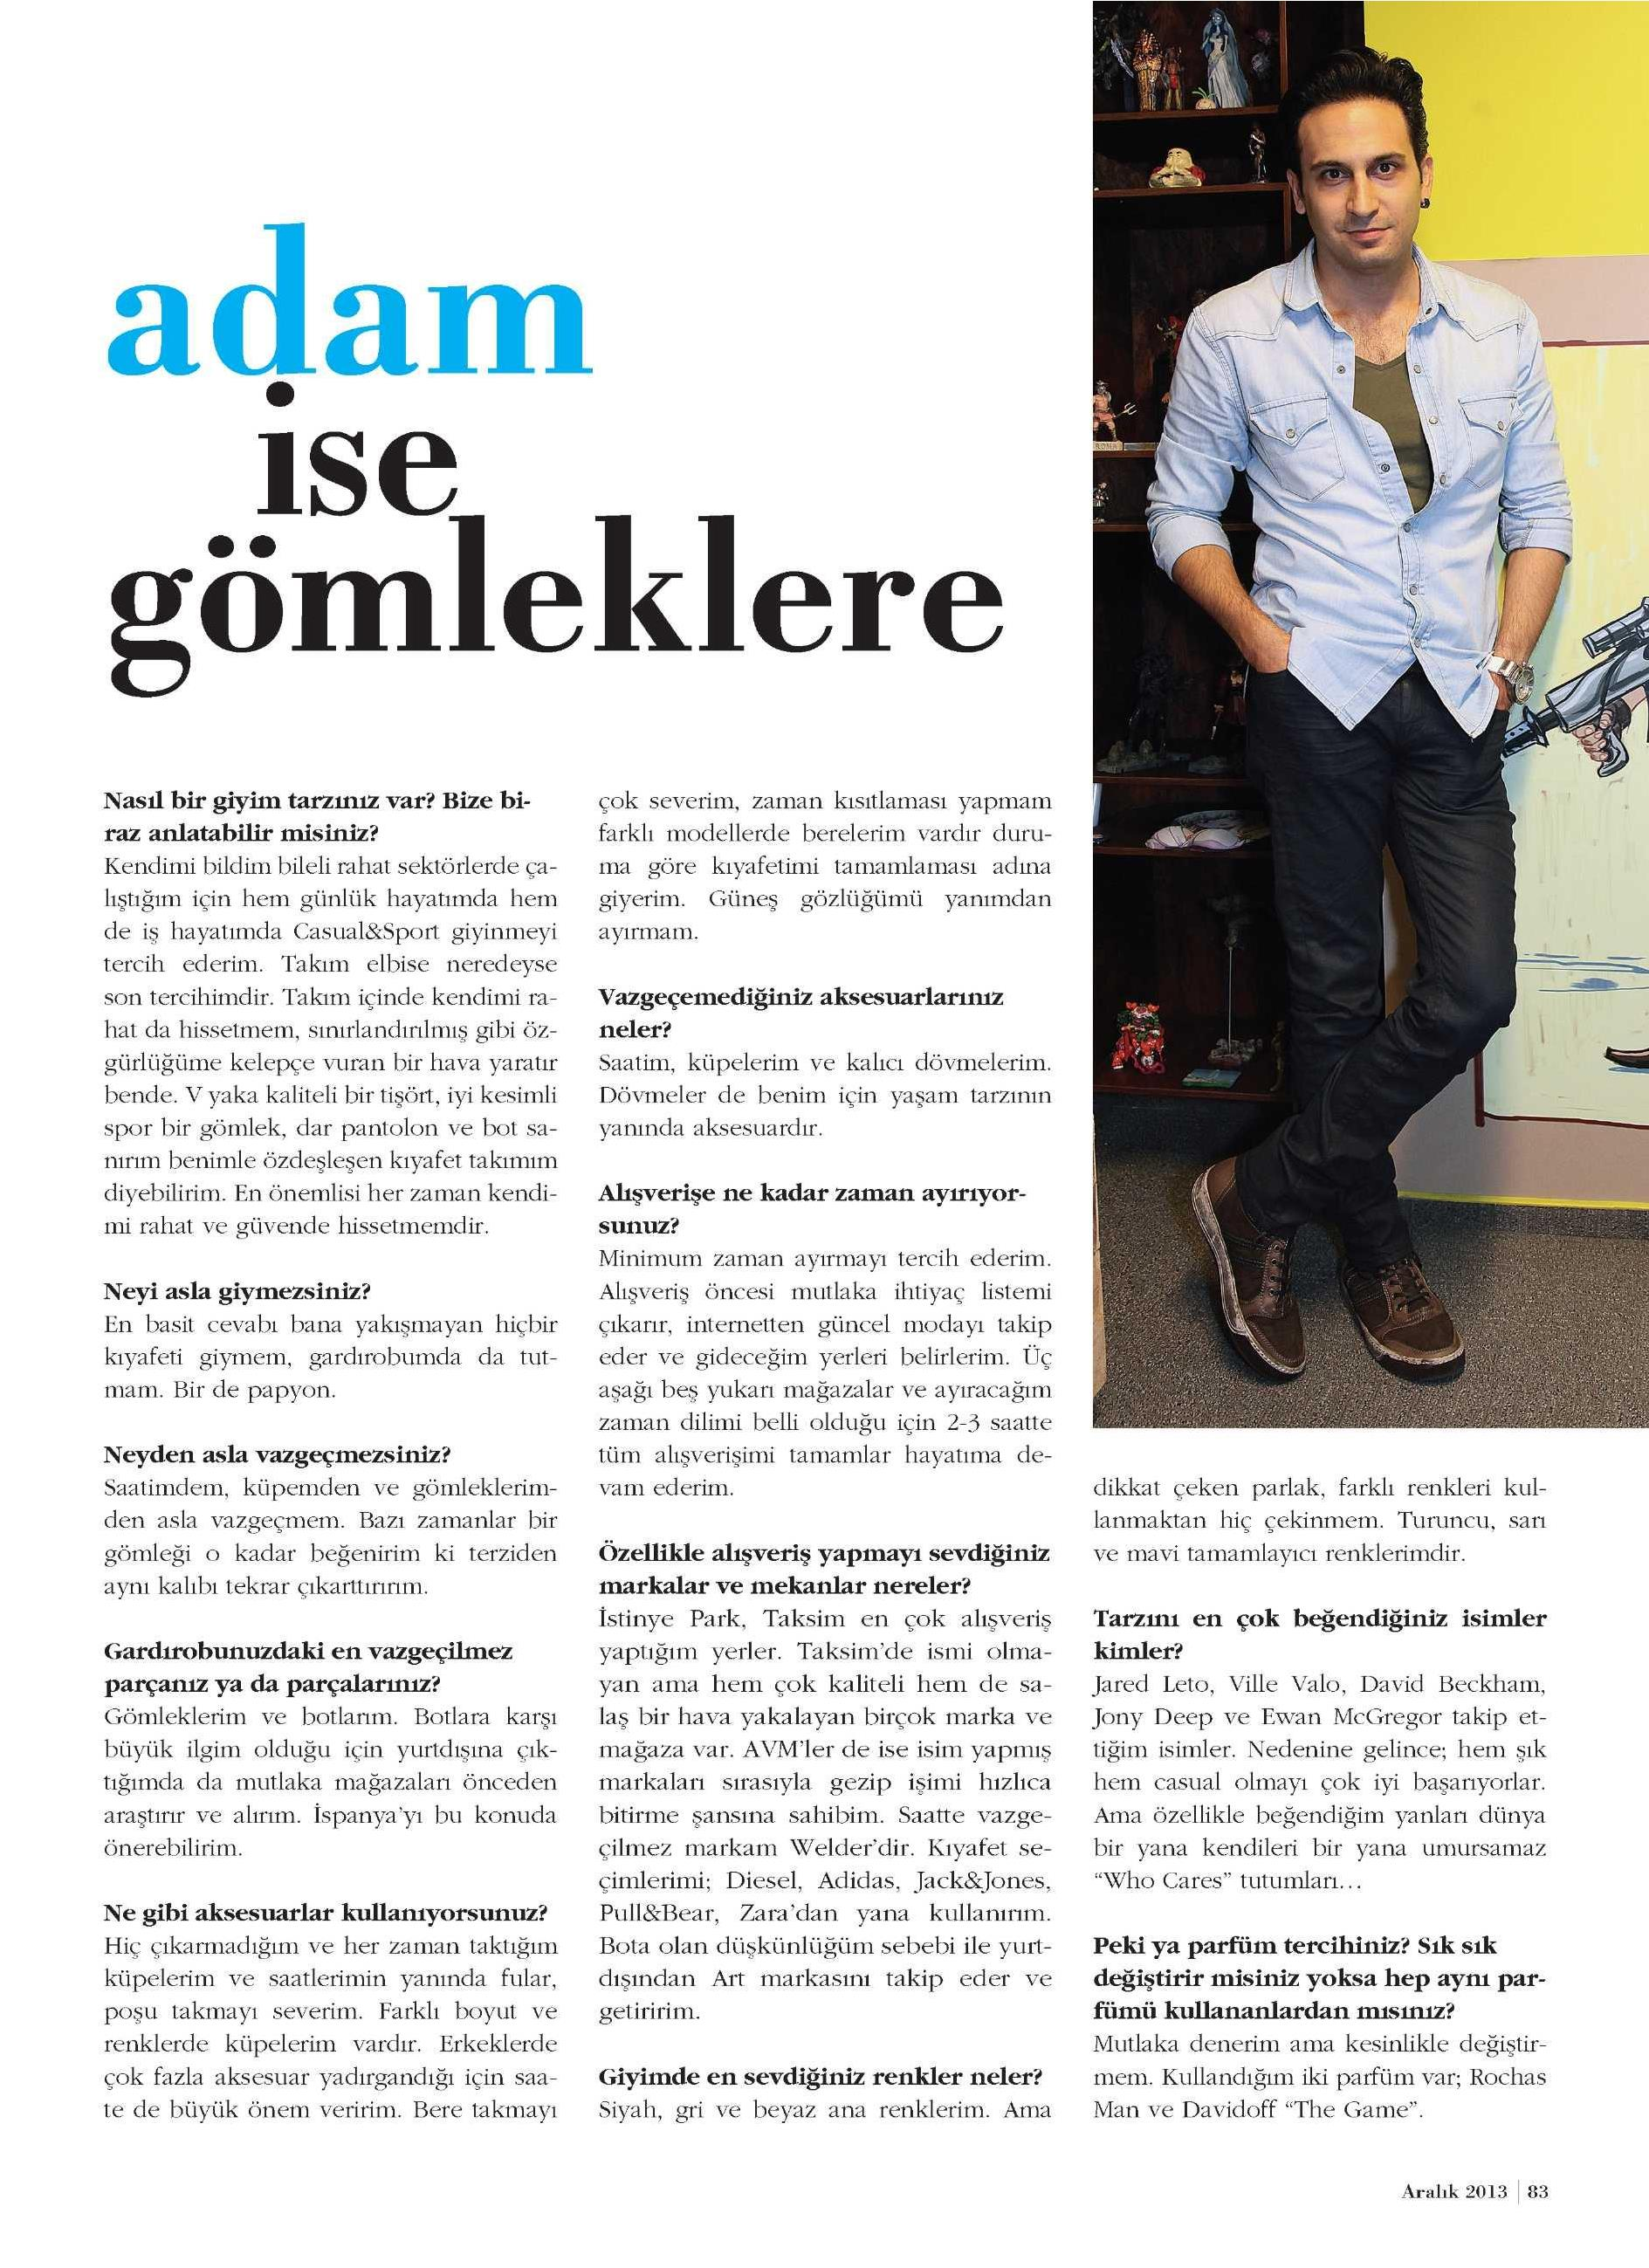 Netmarble-Turkey-Marketing-Turkiye-Magazin-Sayfa-83-1-Aralik-2013